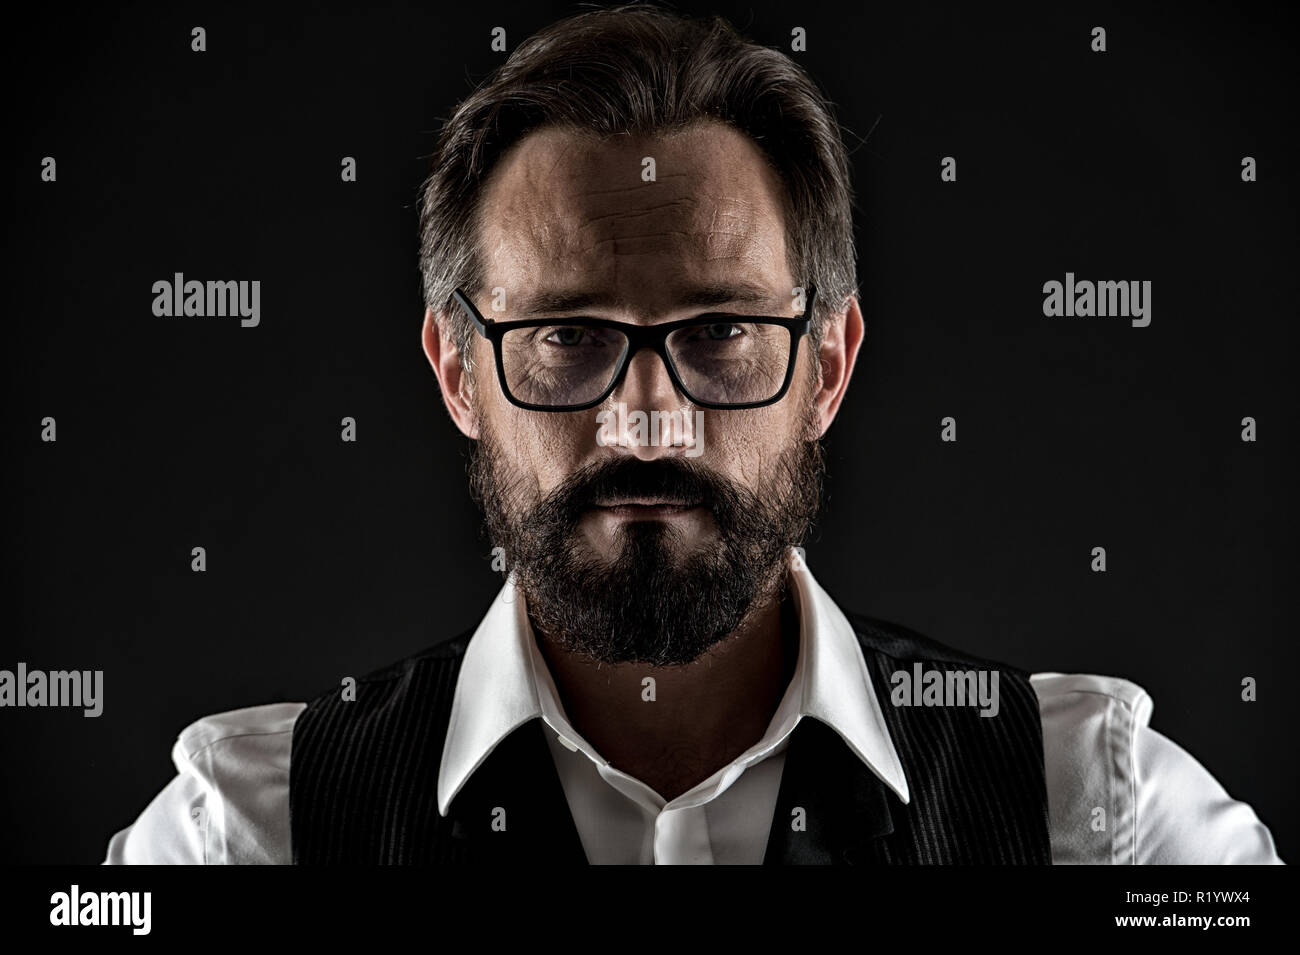 Ask him if you need wise advice. Business man face confident with wrinkles beard mustache close up. Business man classic formal clothing look strictly. Business advice more experienced entrepreneur. - Stock Image